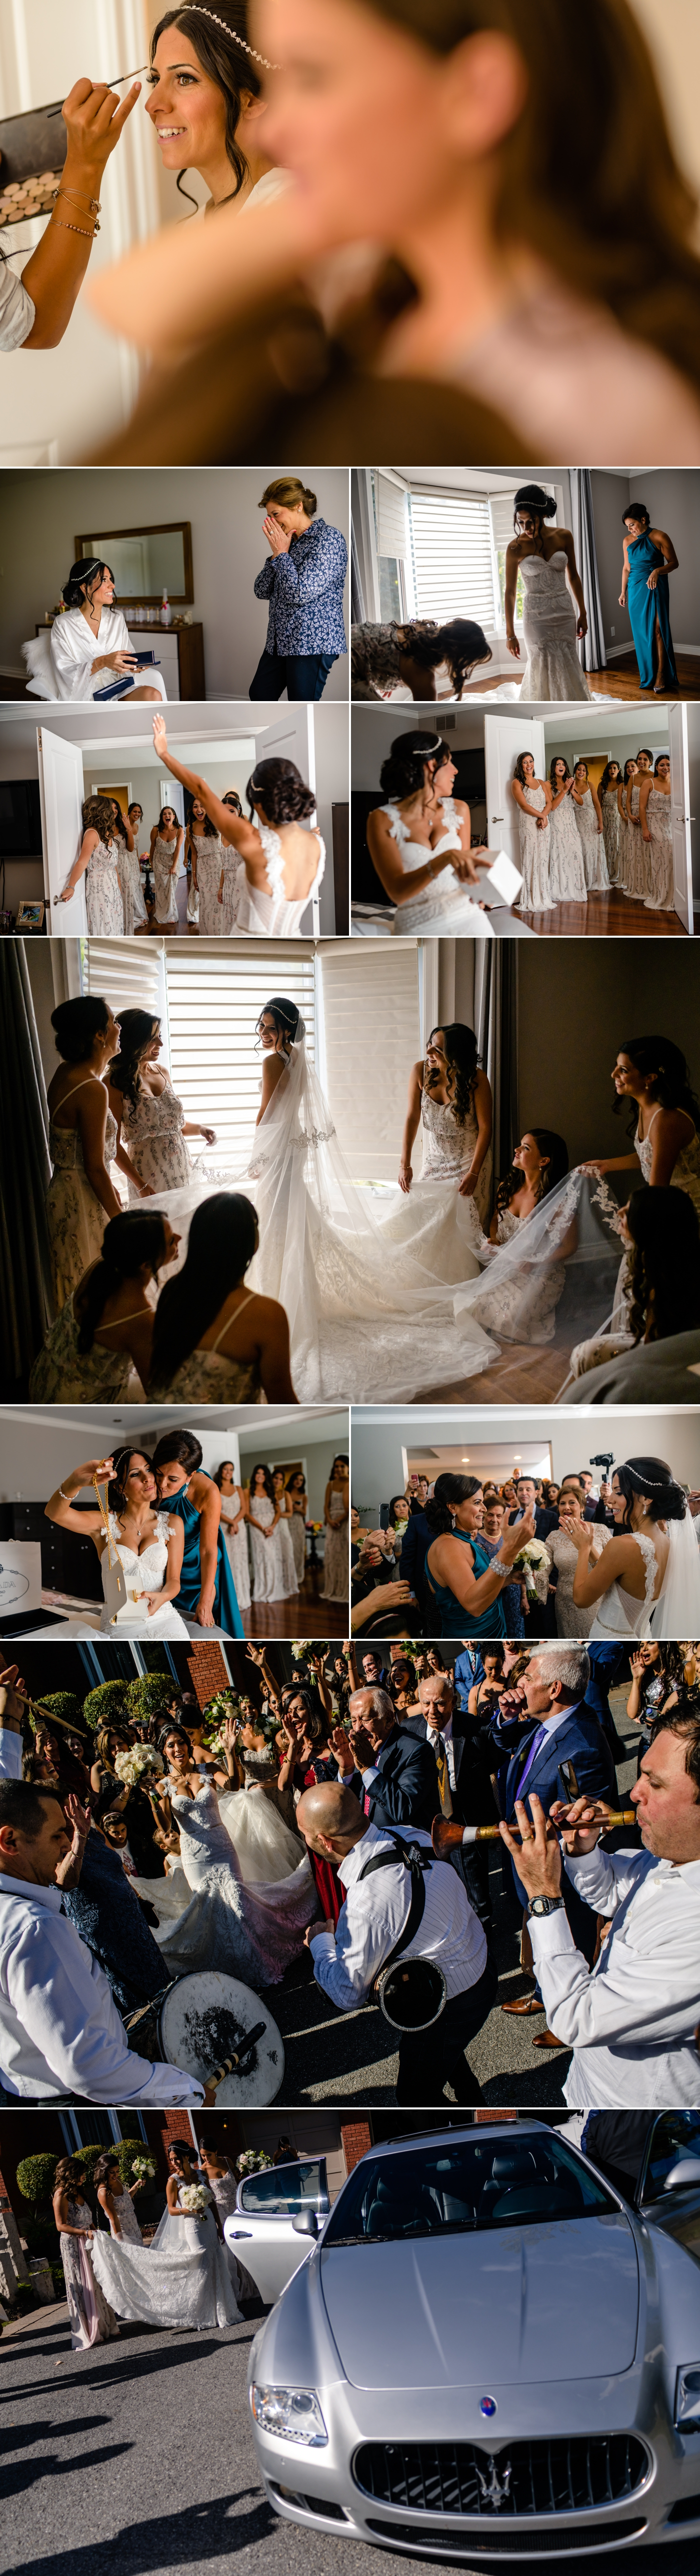 bride getting ready before a lebanese wedding ceremony at st elias cathedral in ottawa